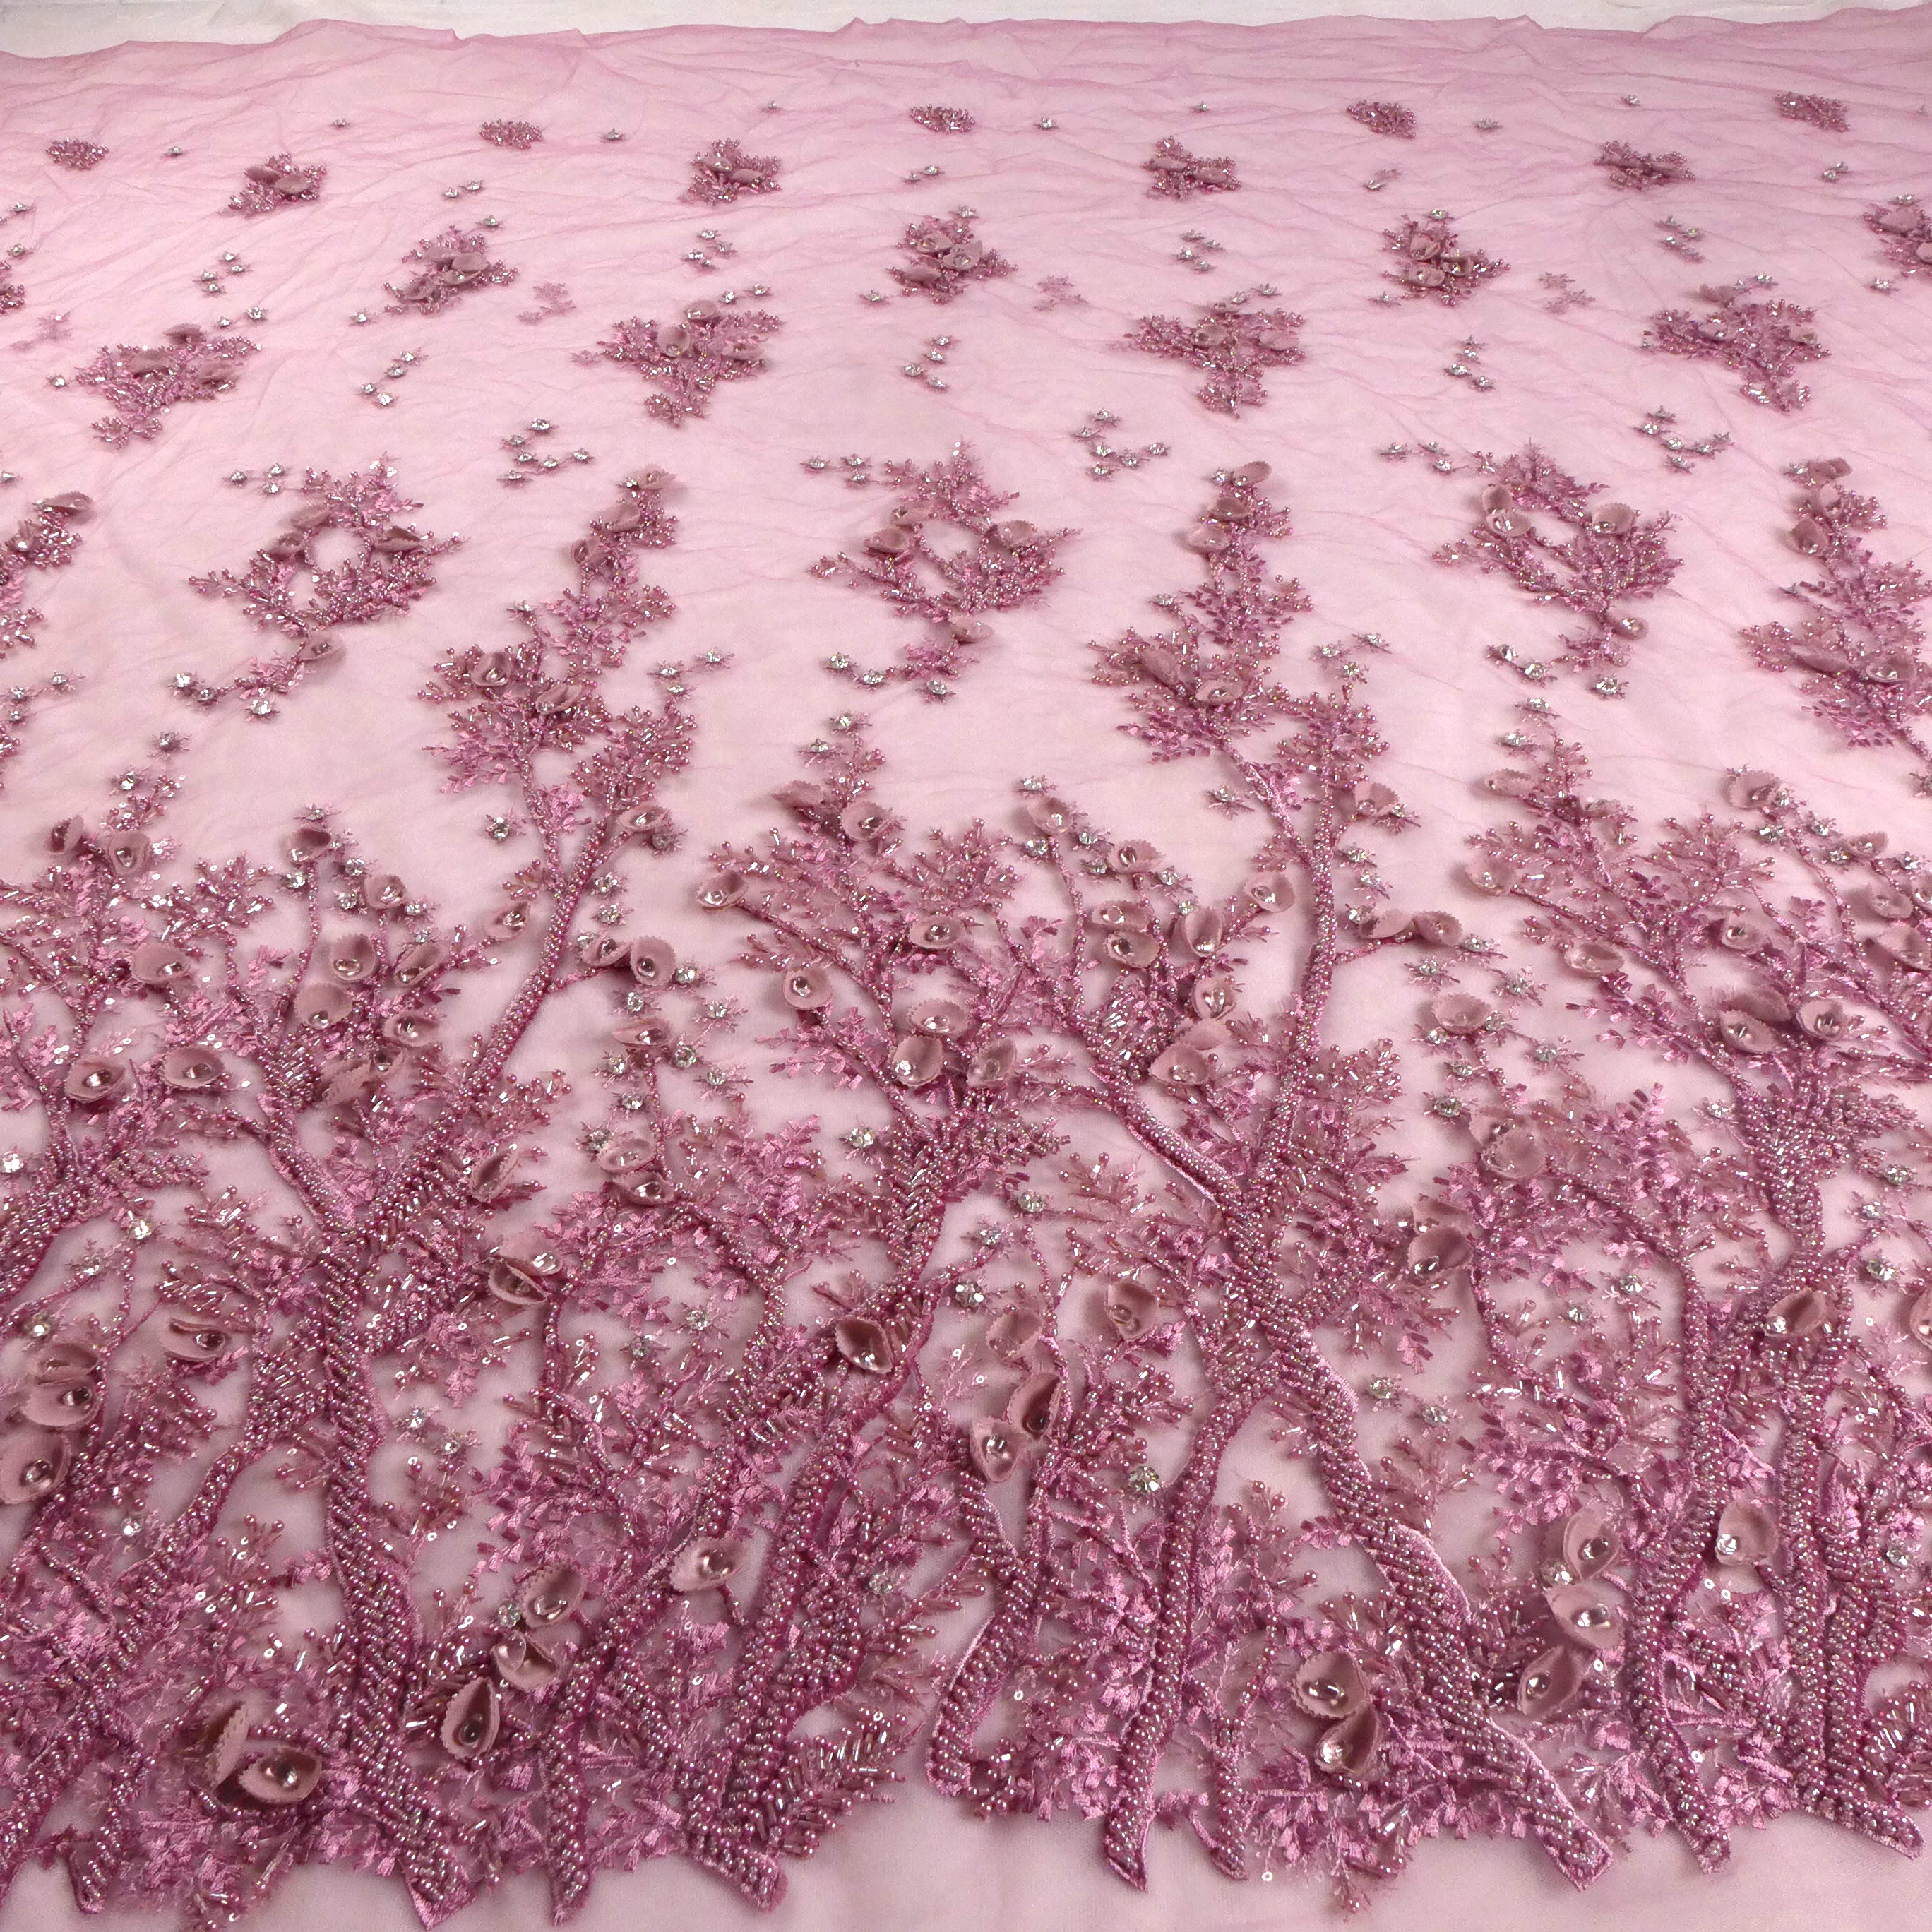 GOOD NEWS Restock some yards La Belleza dirty pink handmade beading crystal 3D flowers evening dress lace fabric 1 yard